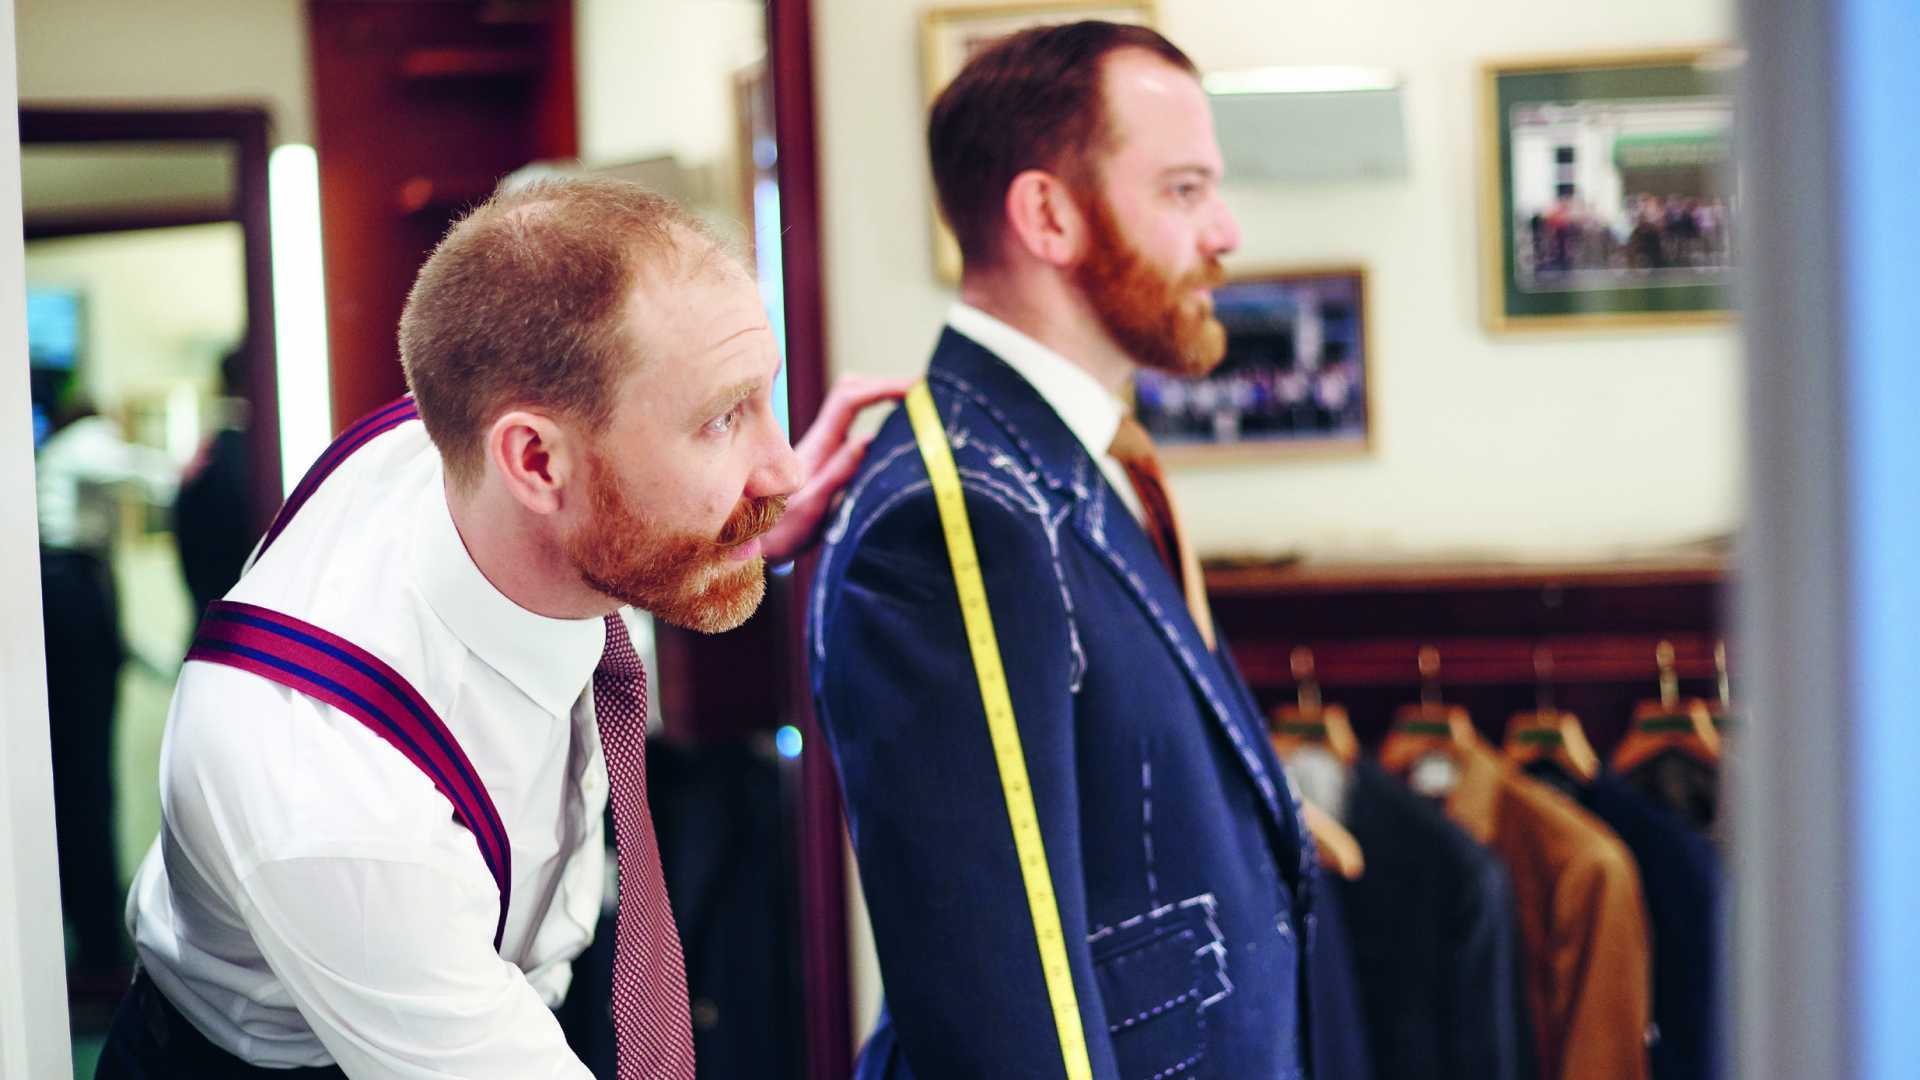 Savile Row tailors Henry Poole & Co suit being tailored